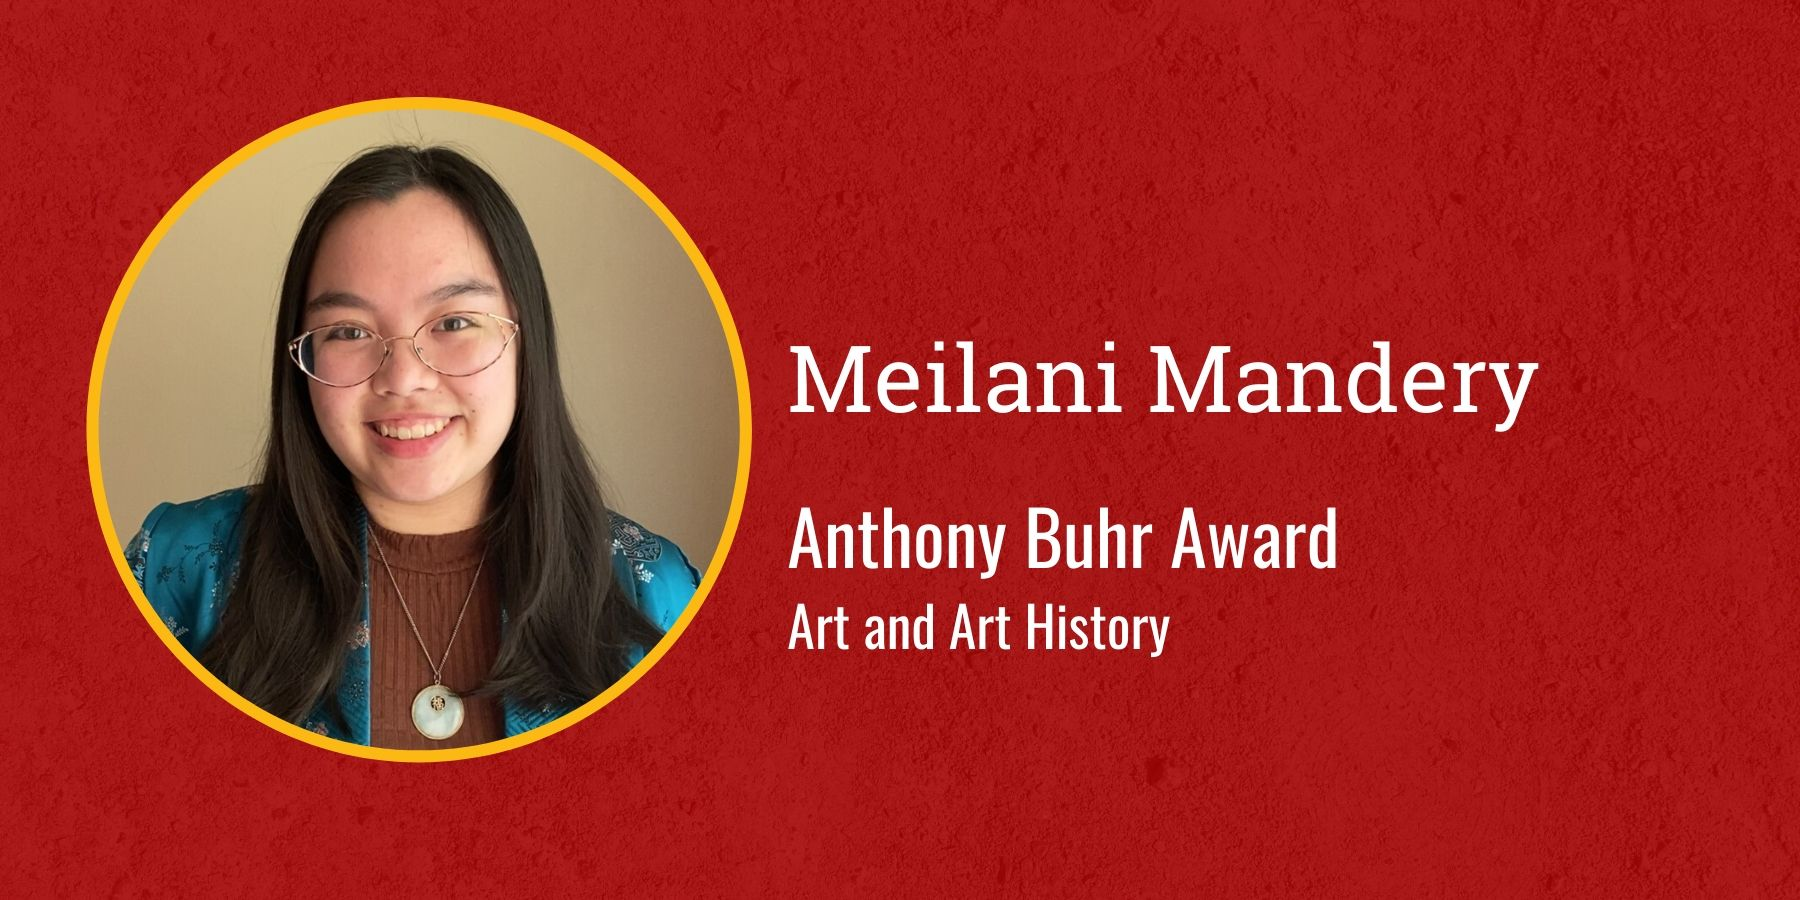 Photo of Meilani Mandery and text Anthony Buhr Award, Performing Arts and Arts Leadership